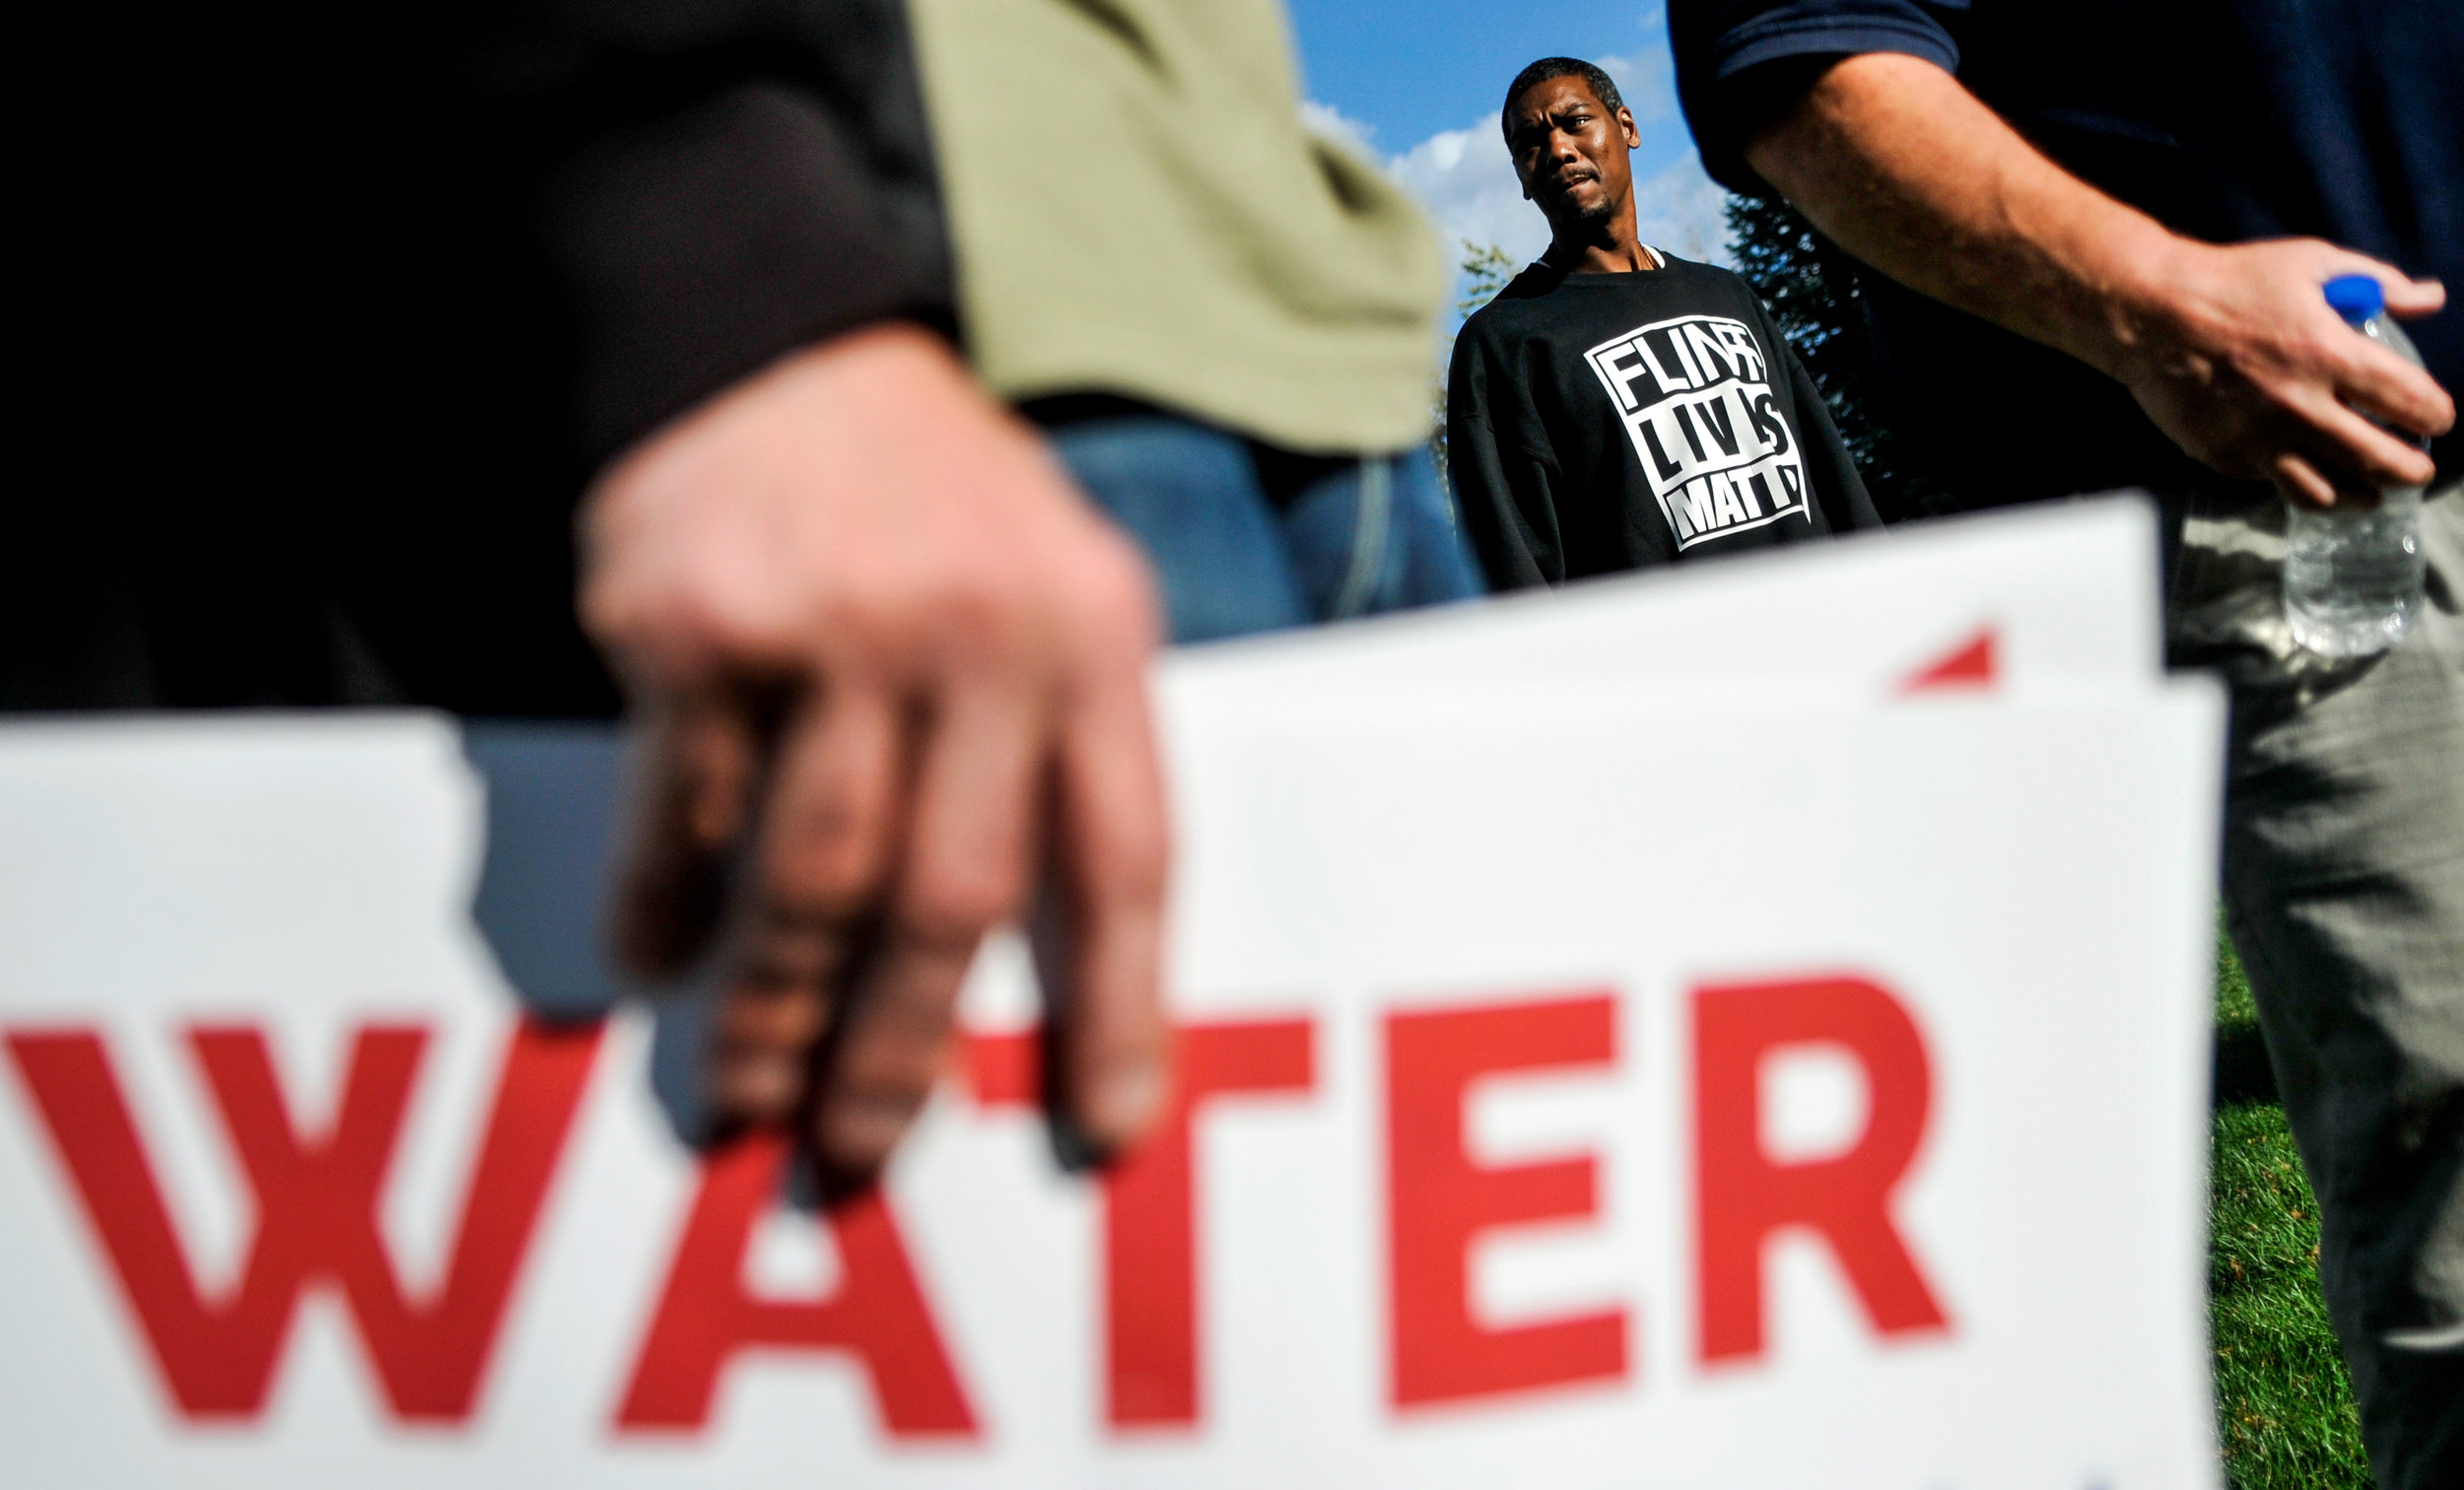 Flint resident Aaron Stinson, who had one of the highest lead levels recorded in Genesee County, center, stands with about a dozen people protesting the lack of action by the U.S. Senate and House regarding the Flint Water Crisis outside City Hall before the town council meeting Monday, Sept. 26, 2016 in downtown Flint.